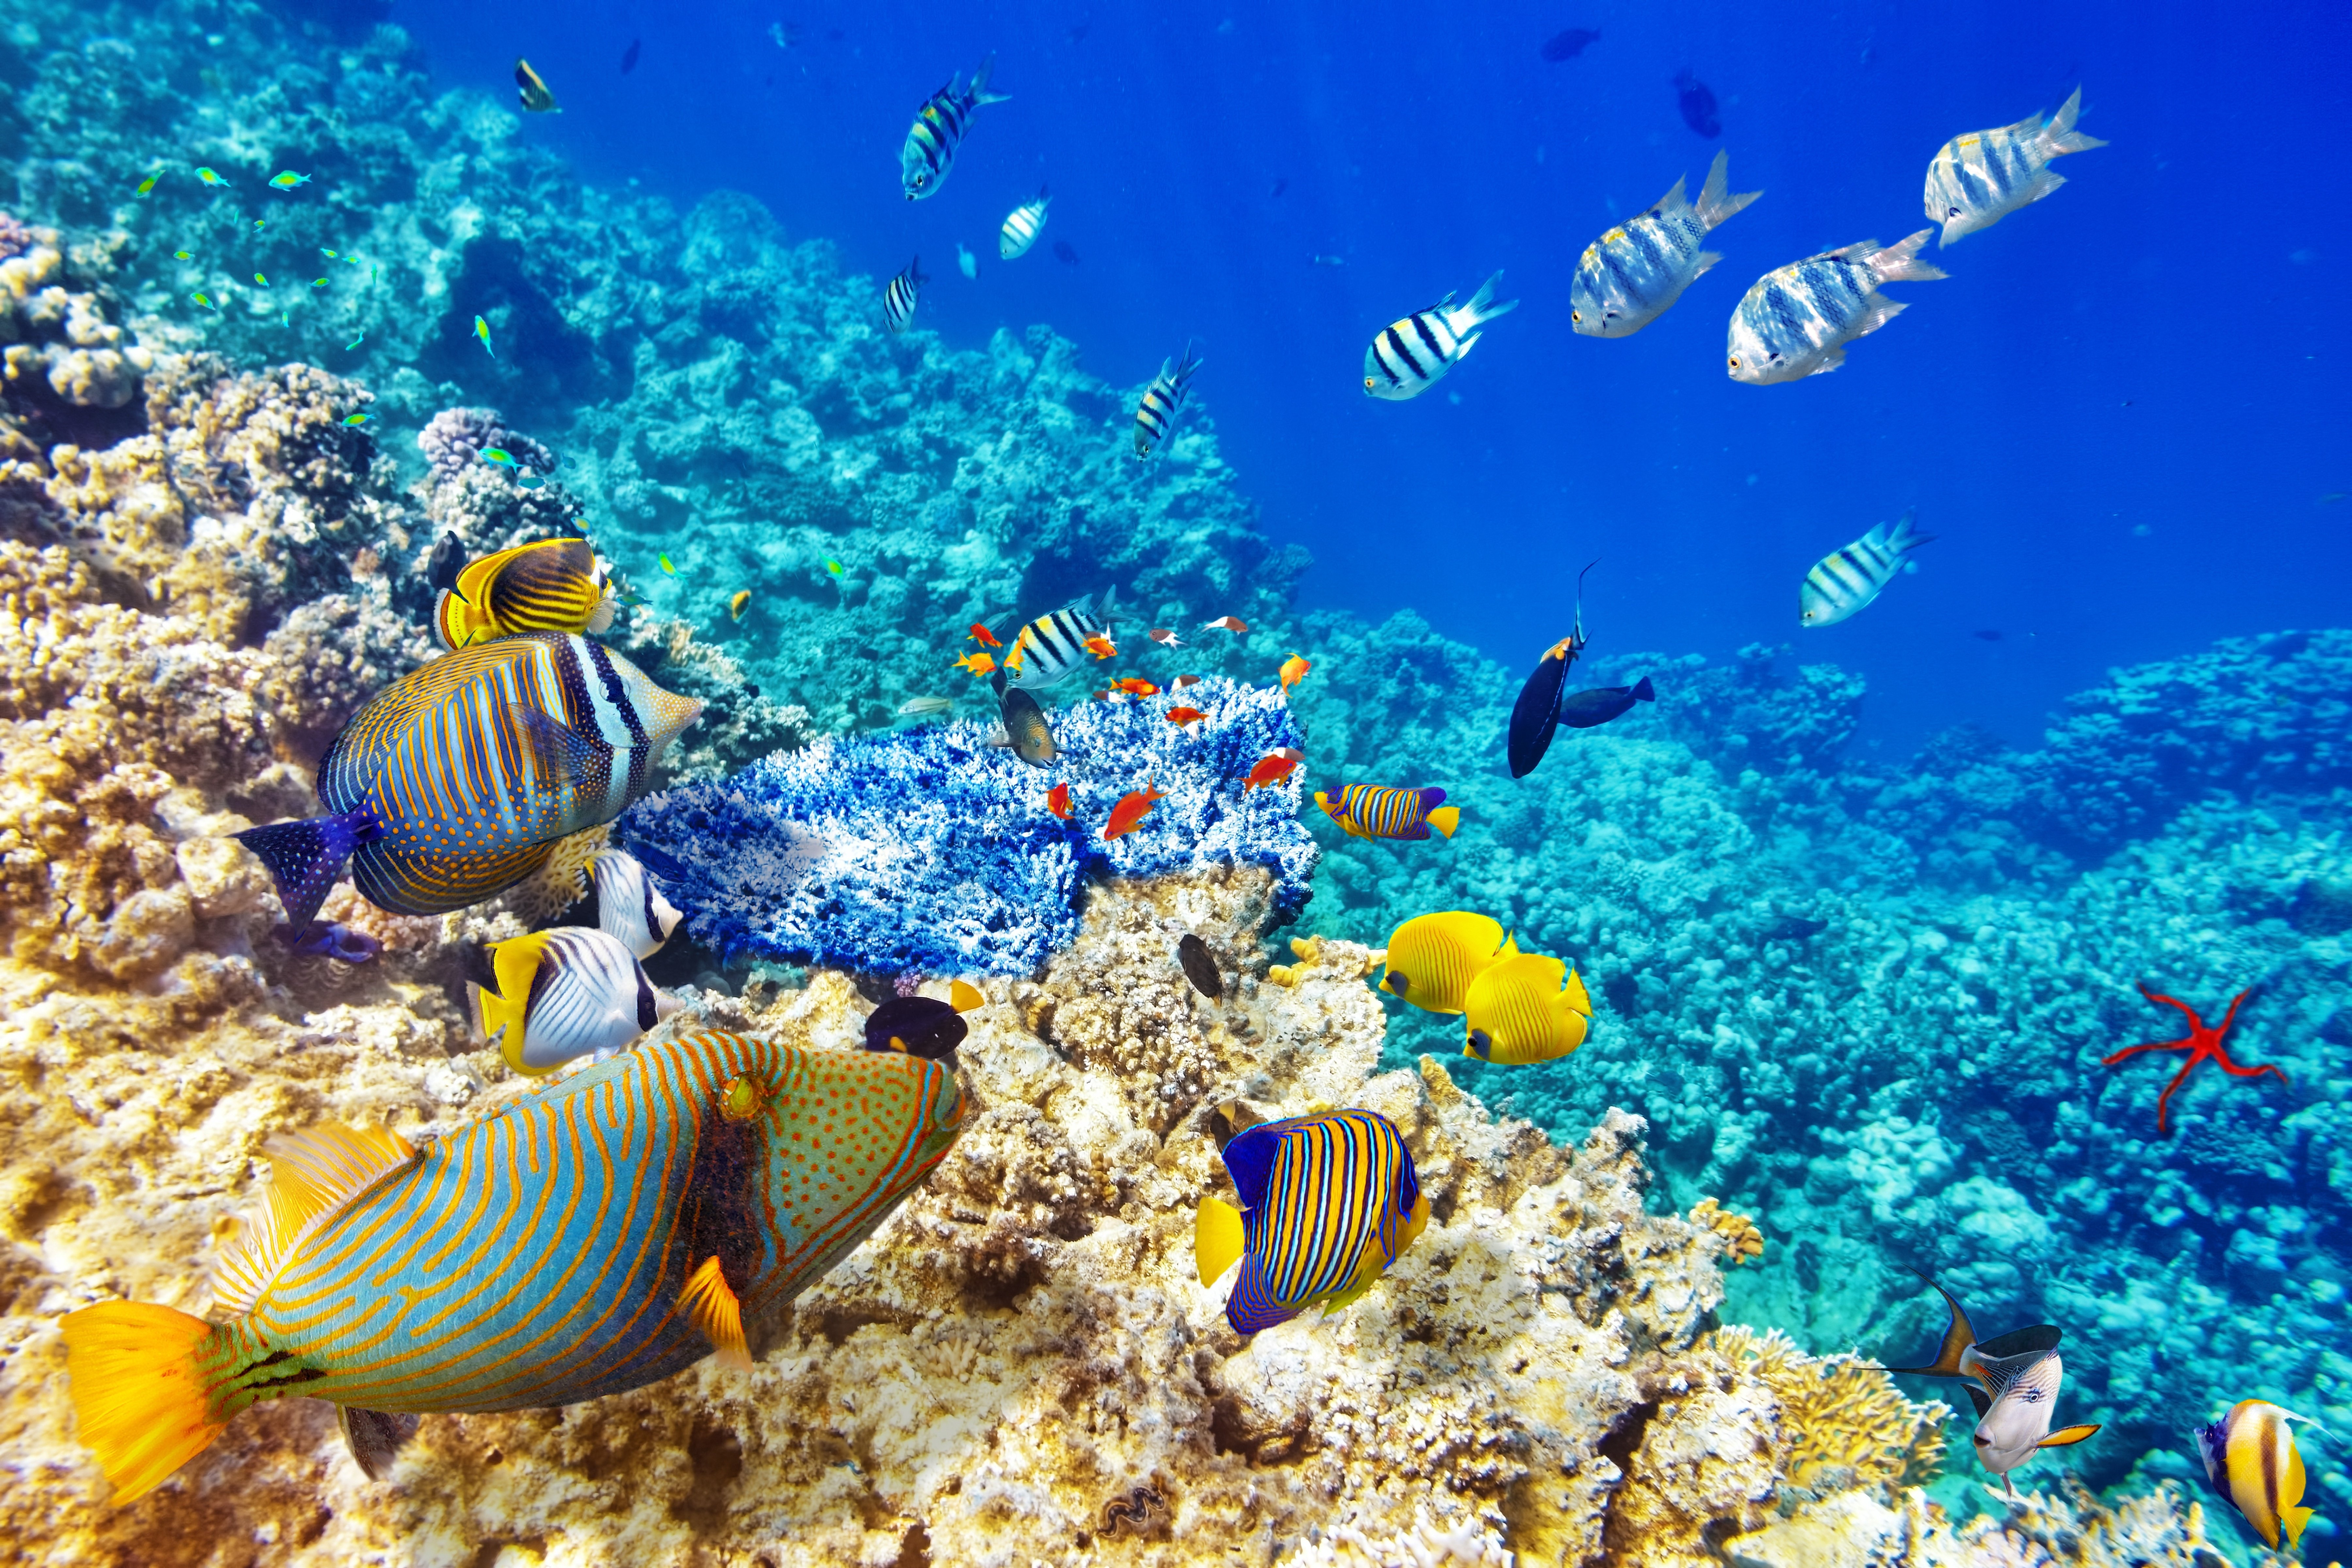 Underwater World Ocean Fish Coral Reef Wallpaper